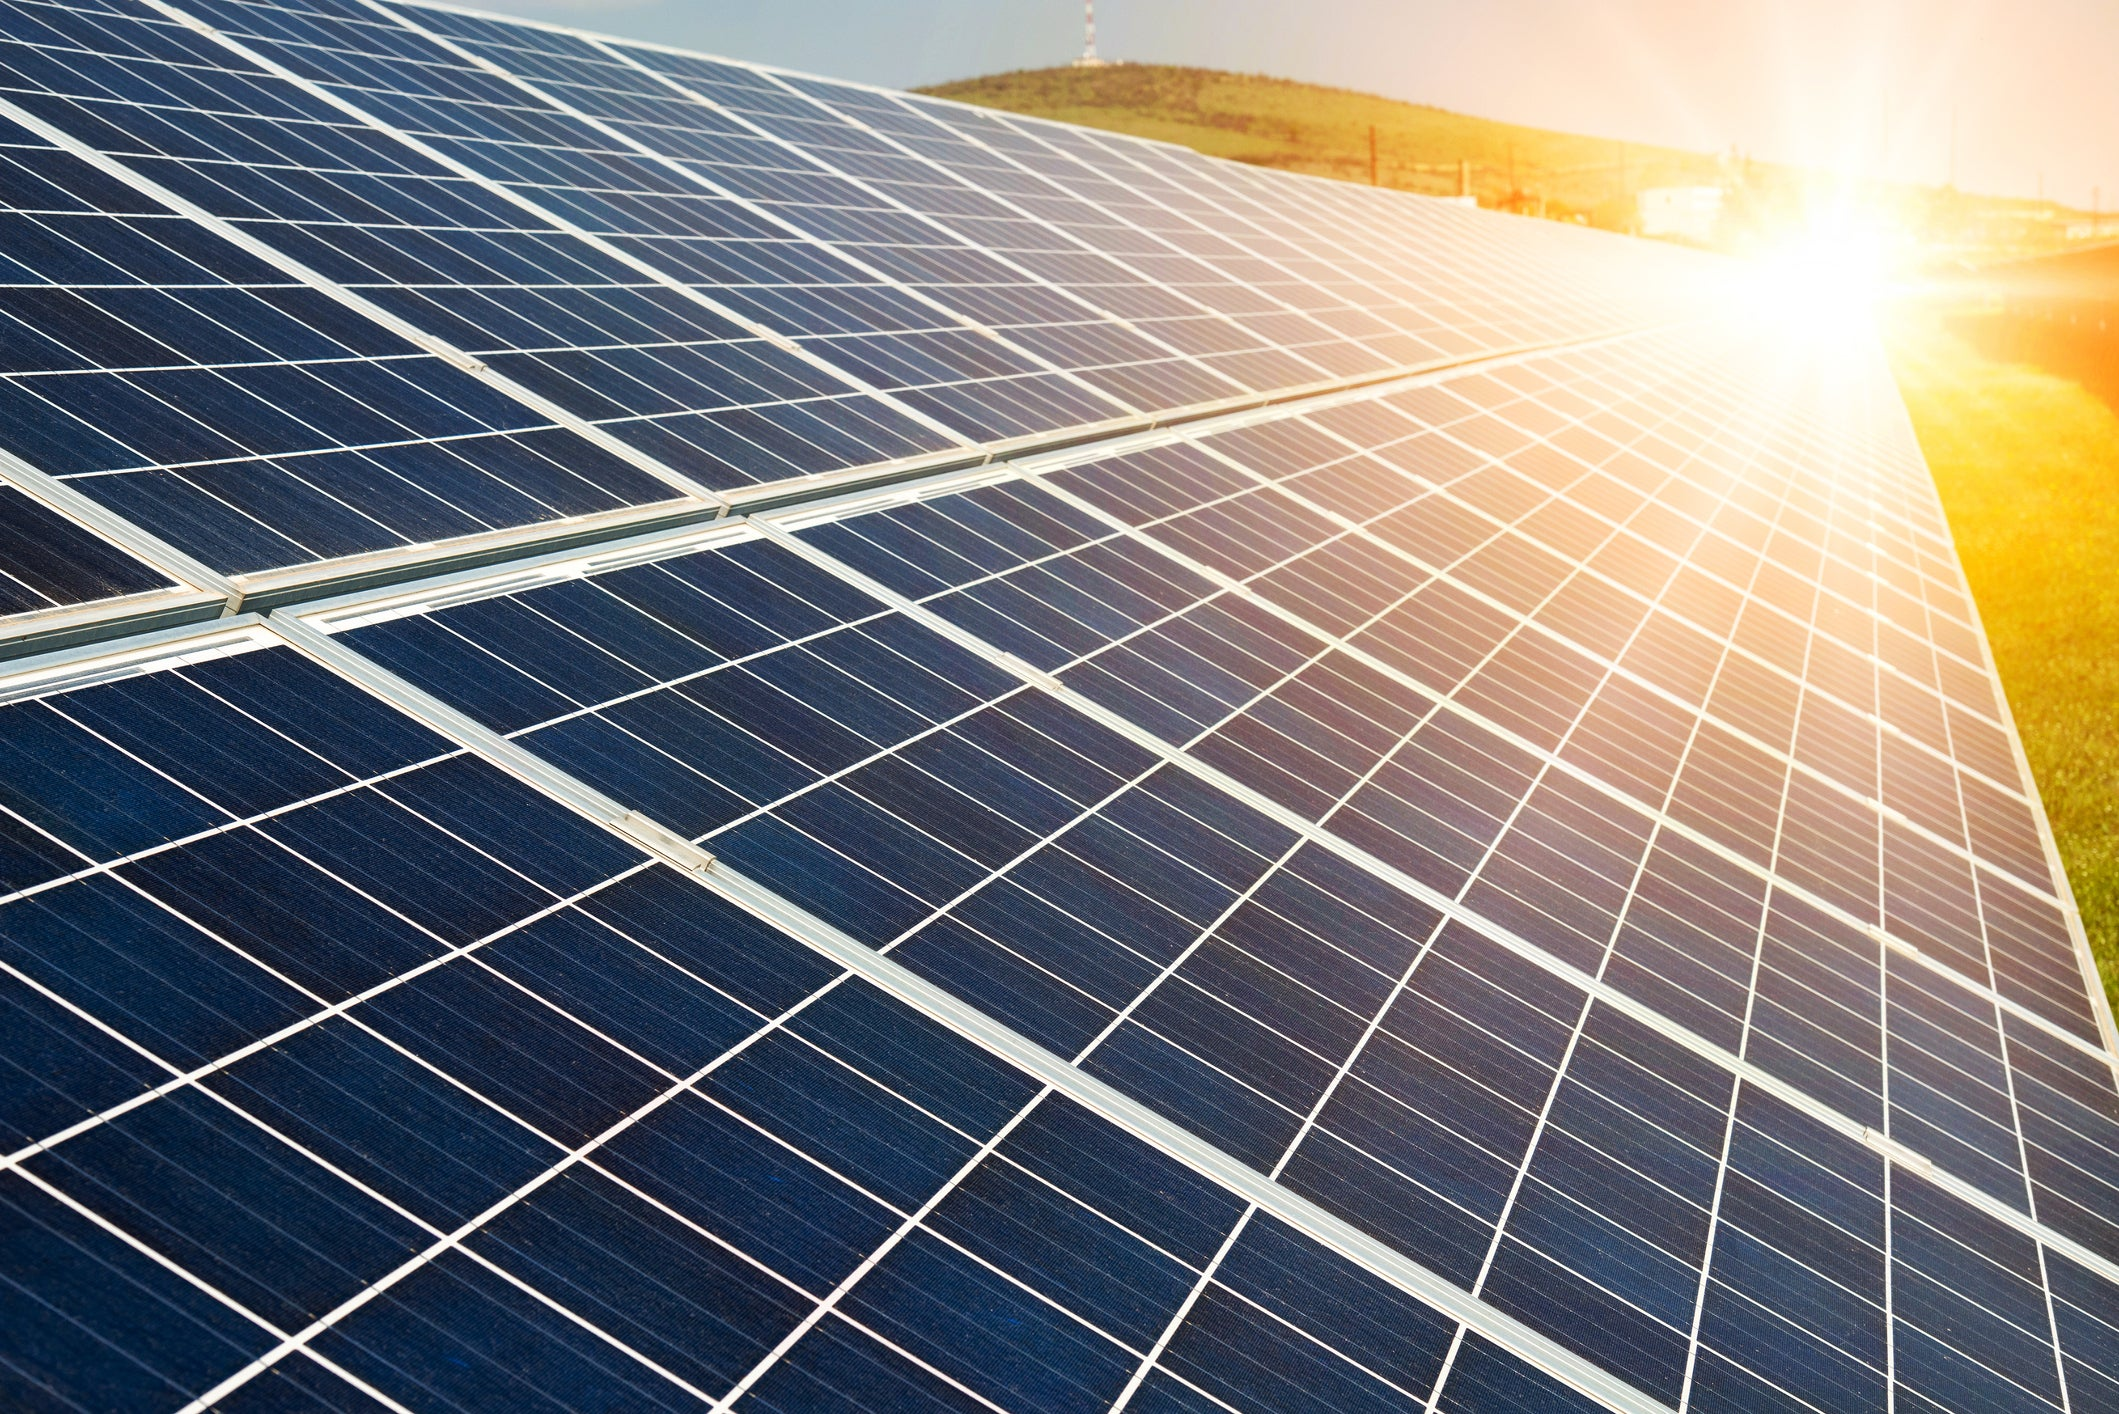 3 Solar Stocks That Could Win From the 2020 Election